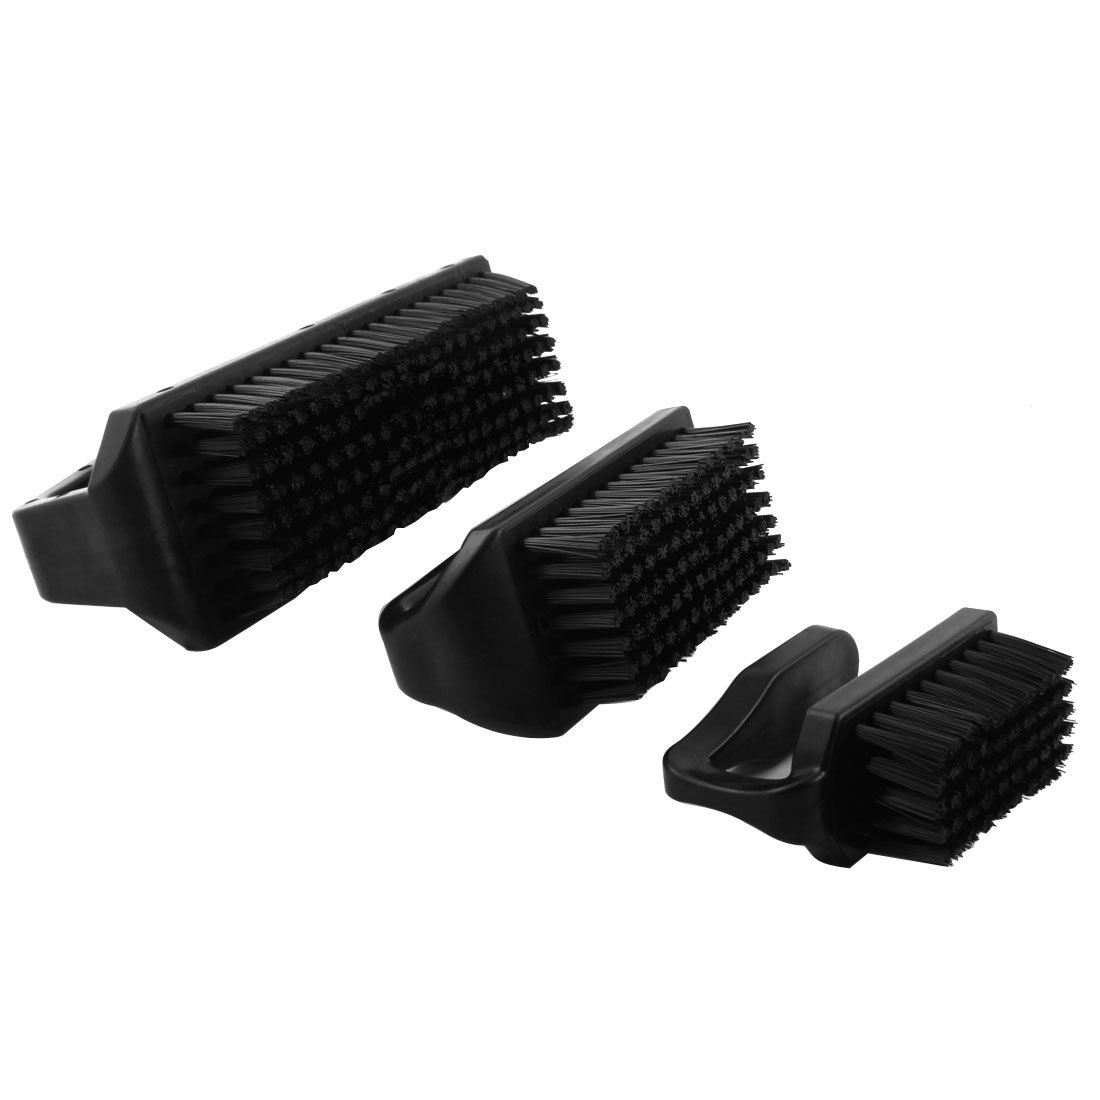 XXL XL L Size U Type Black Plastic Handle Static Control Conductive Ground PCB Rework ESD Anti Static Brush Cleaning Tool 3Pcs